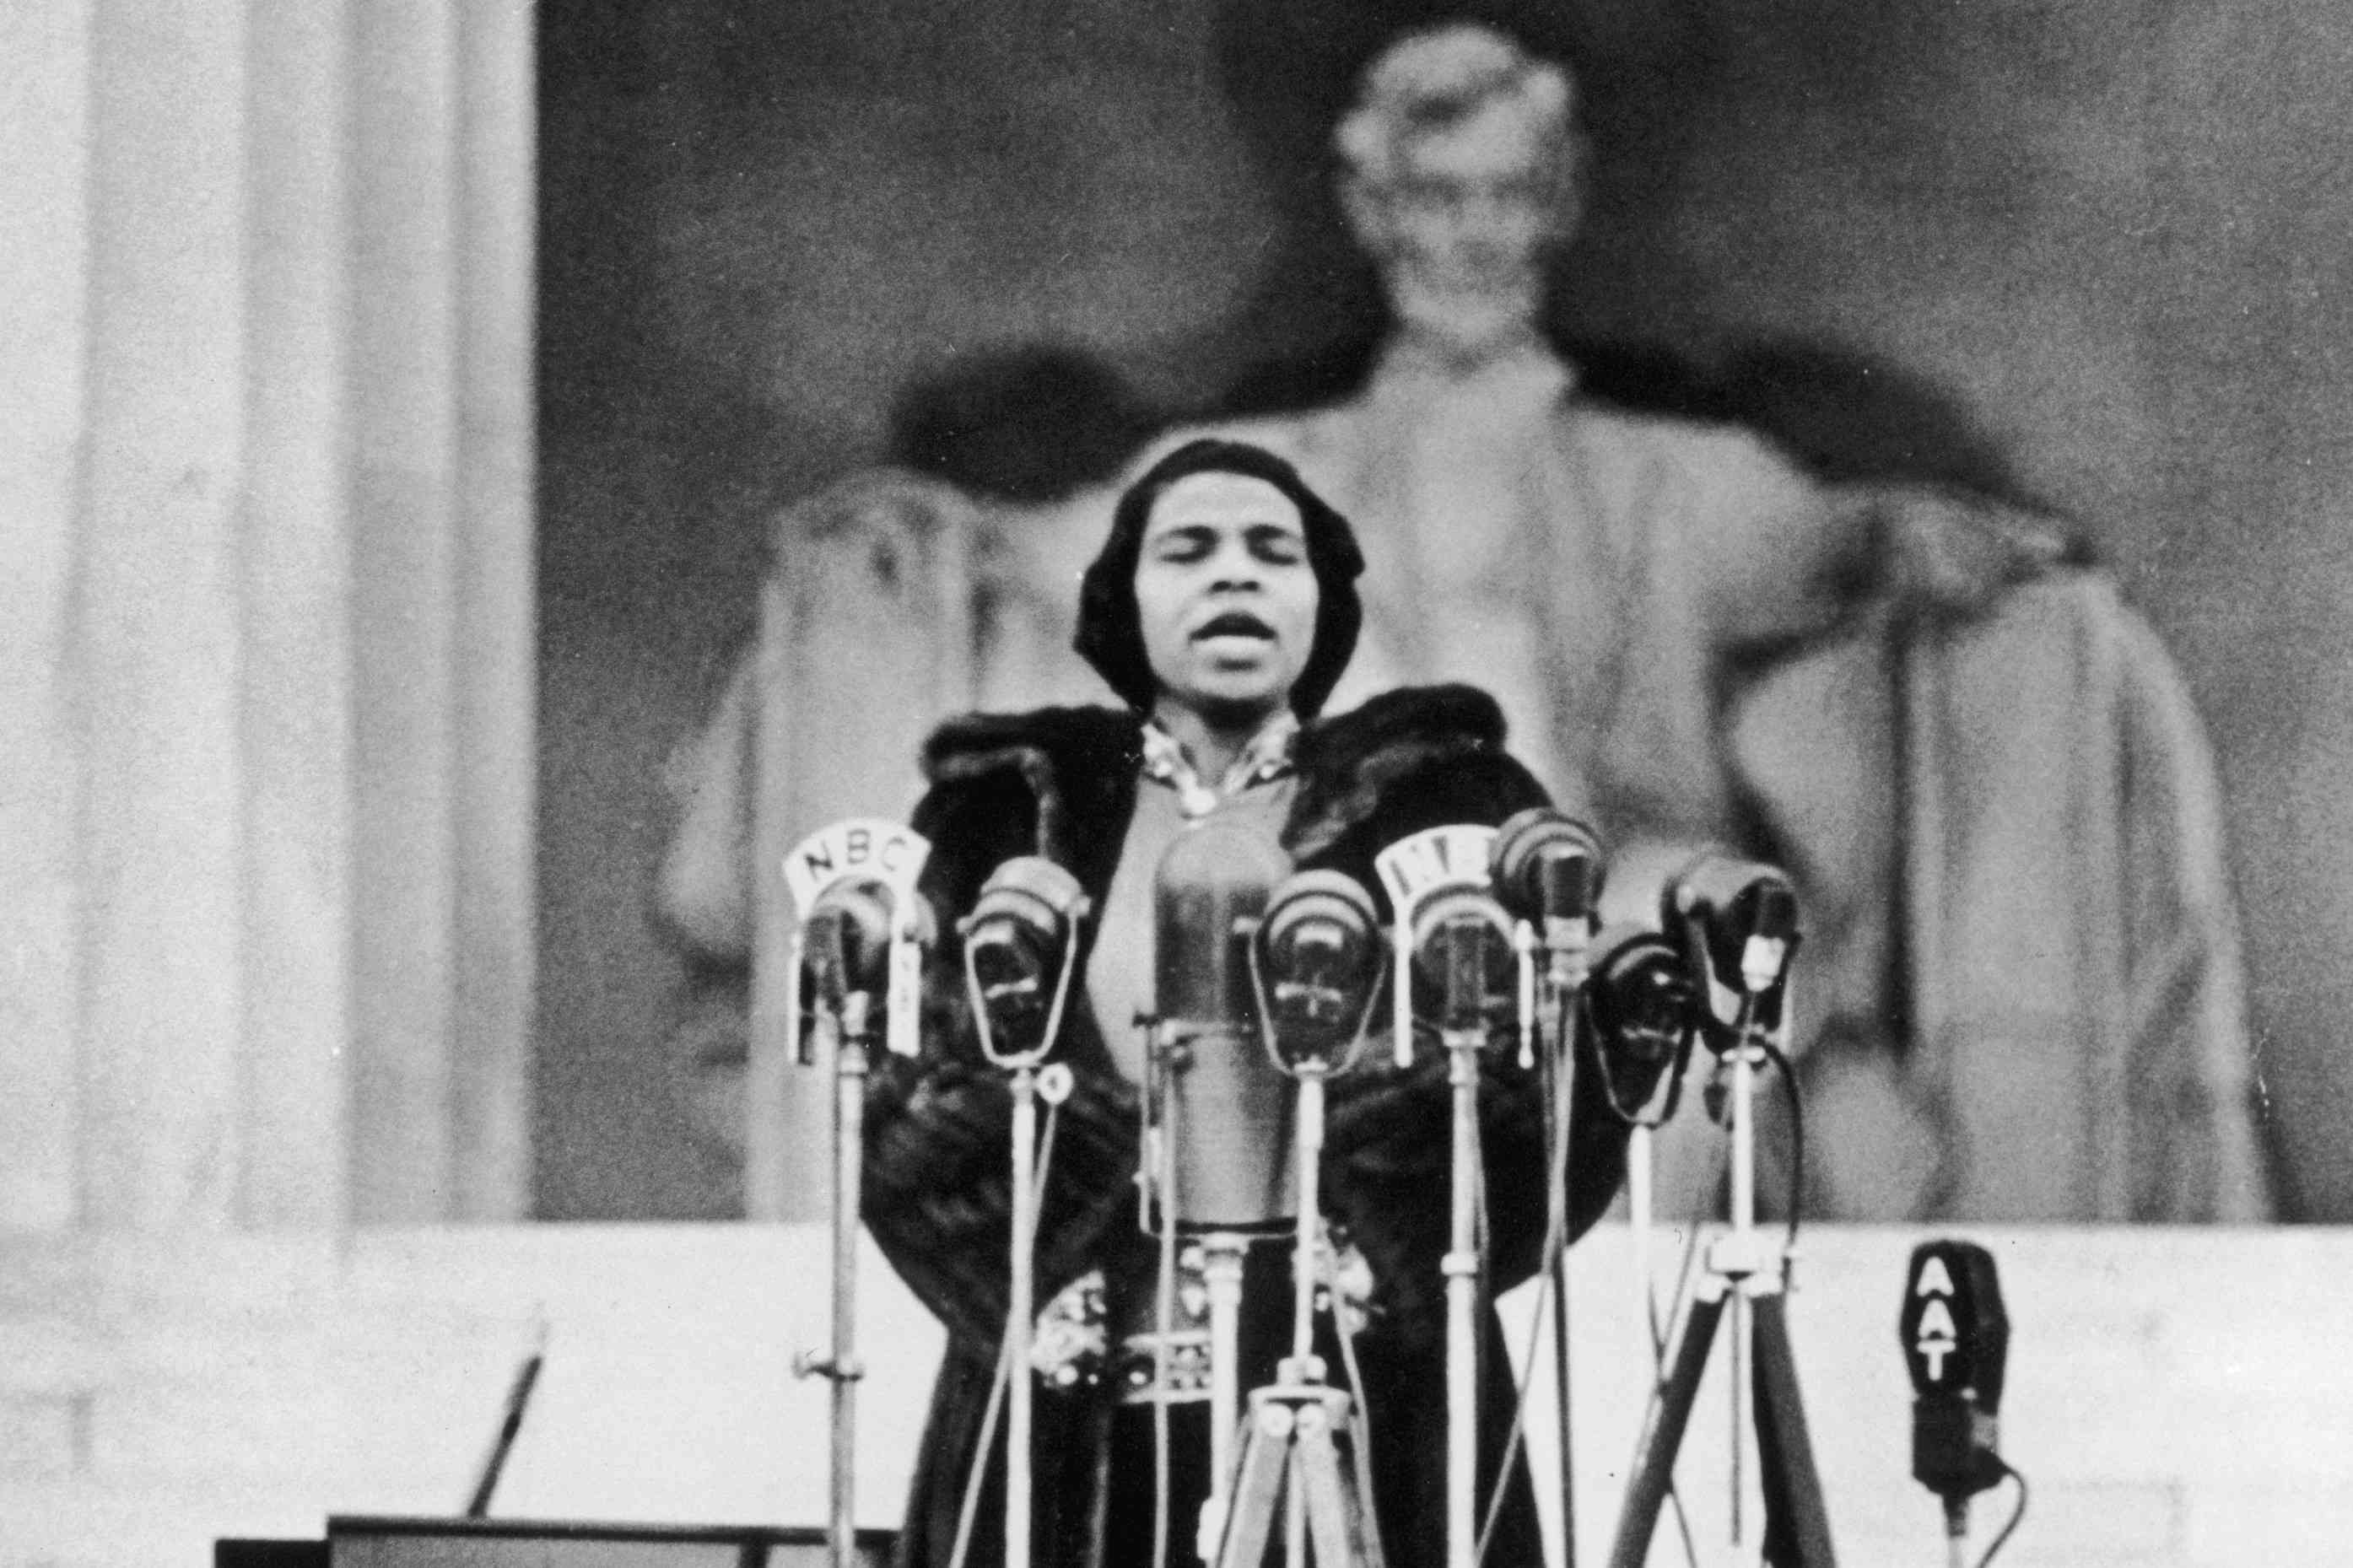 Marian Anderson standing in front of several microphones, closing her eyes, and singing with the Lincoln Statue in the background